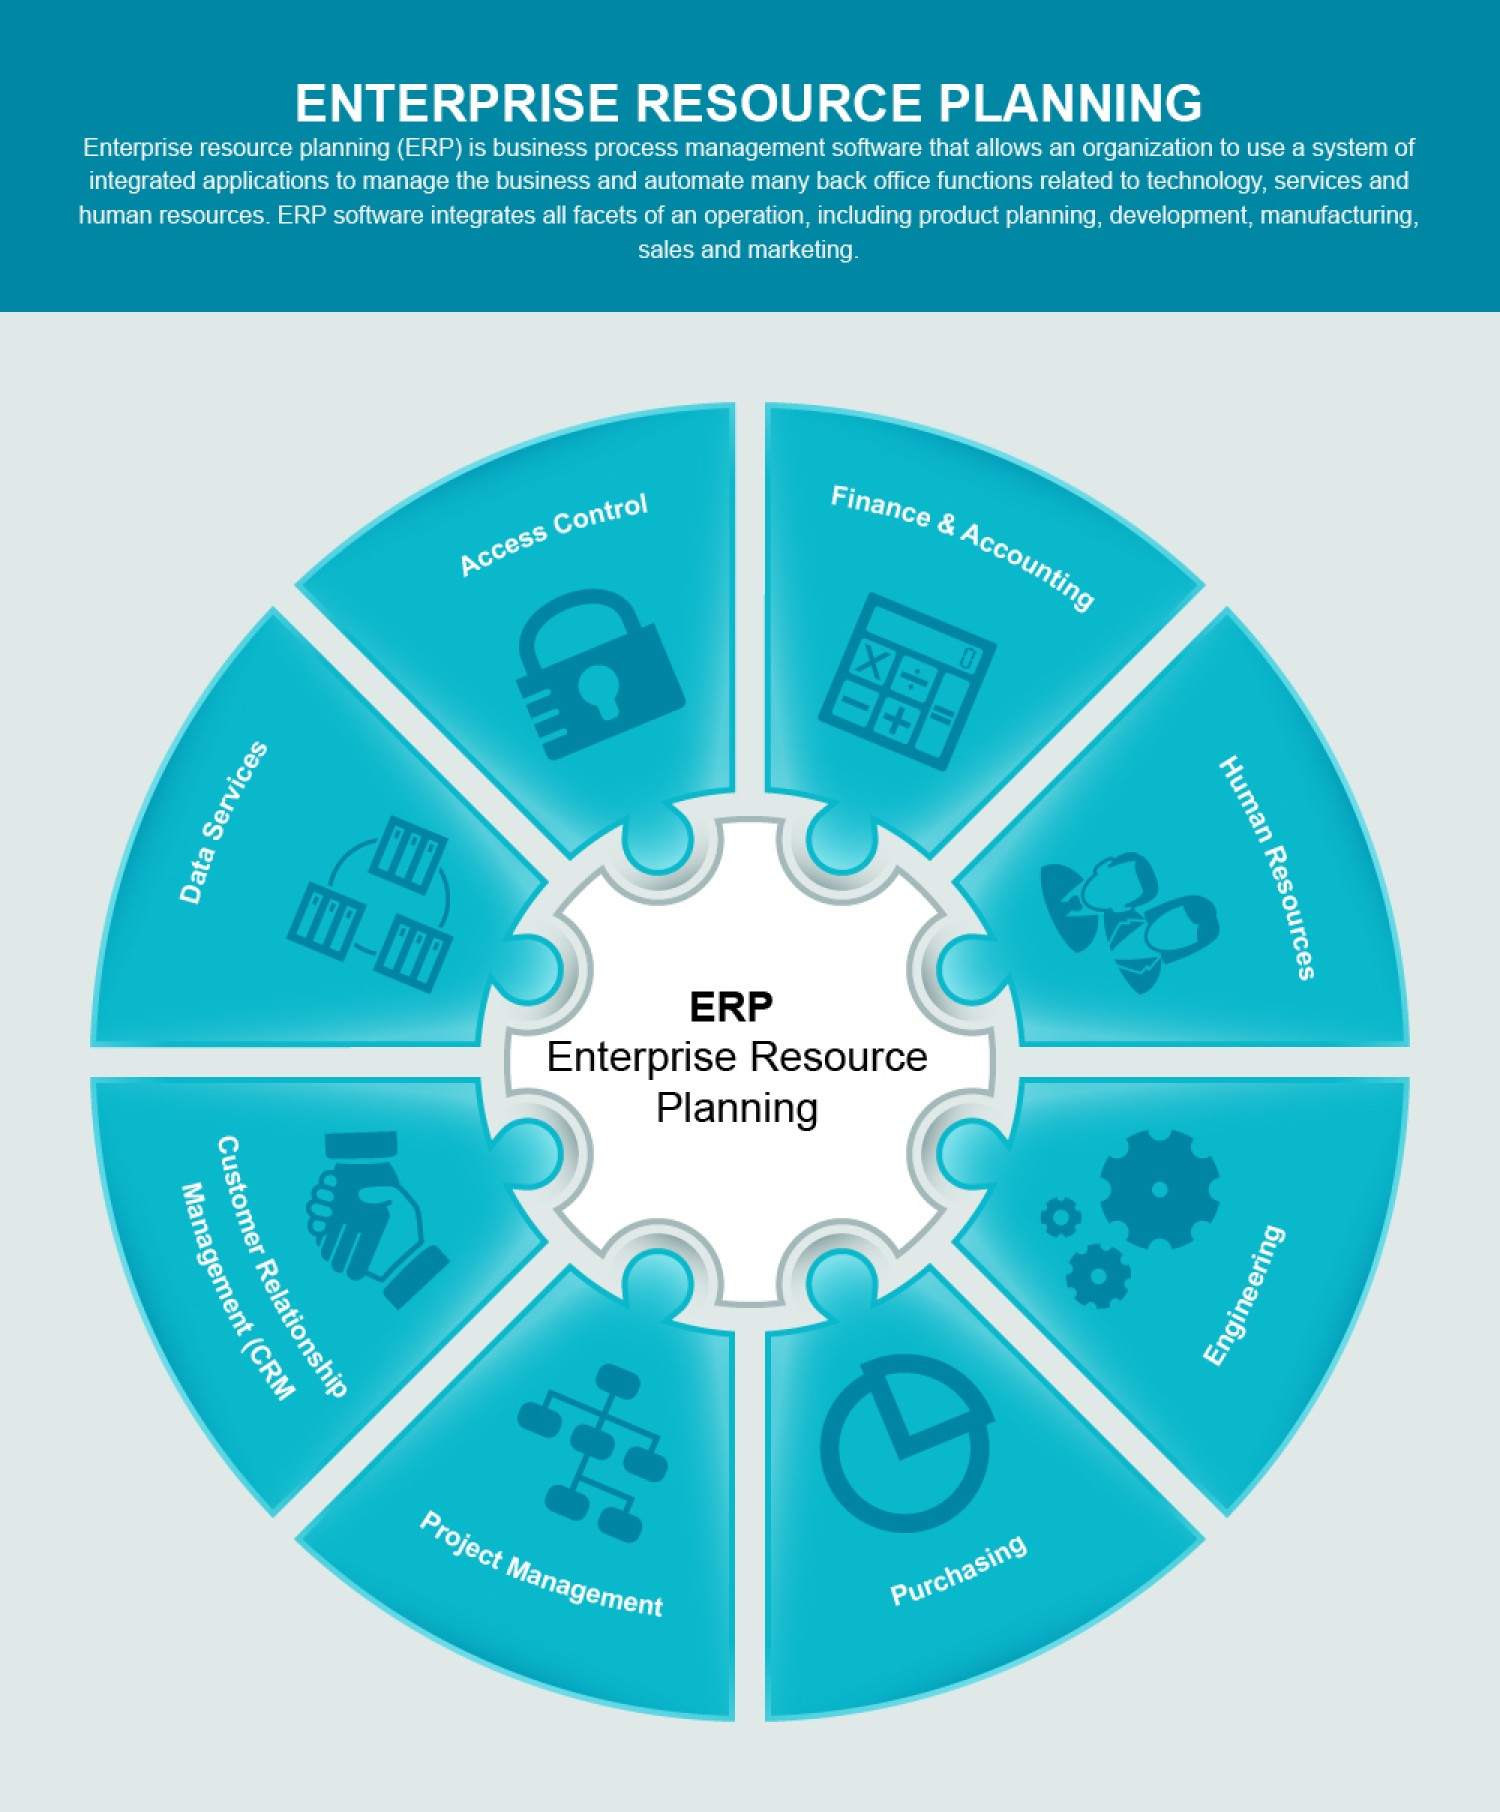 components-of-enterprise-resource-planning_54c9cb4506129_w1500